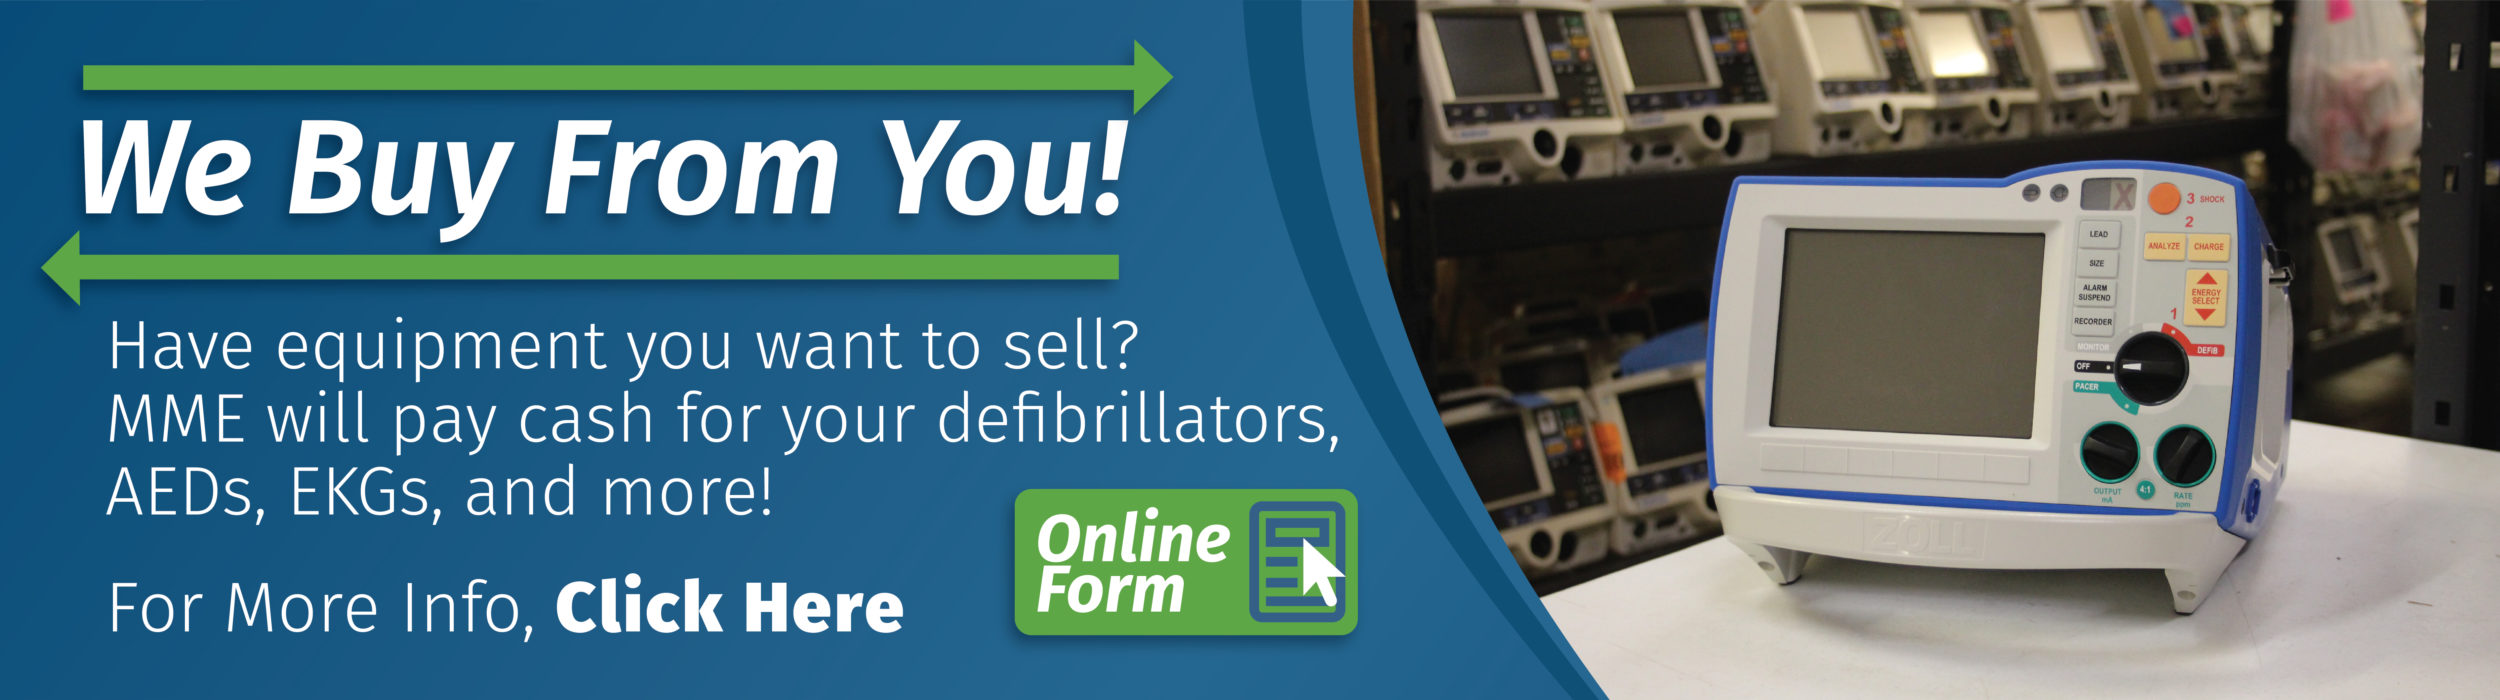 New, Refurbished & Used Medical Equipment - MME